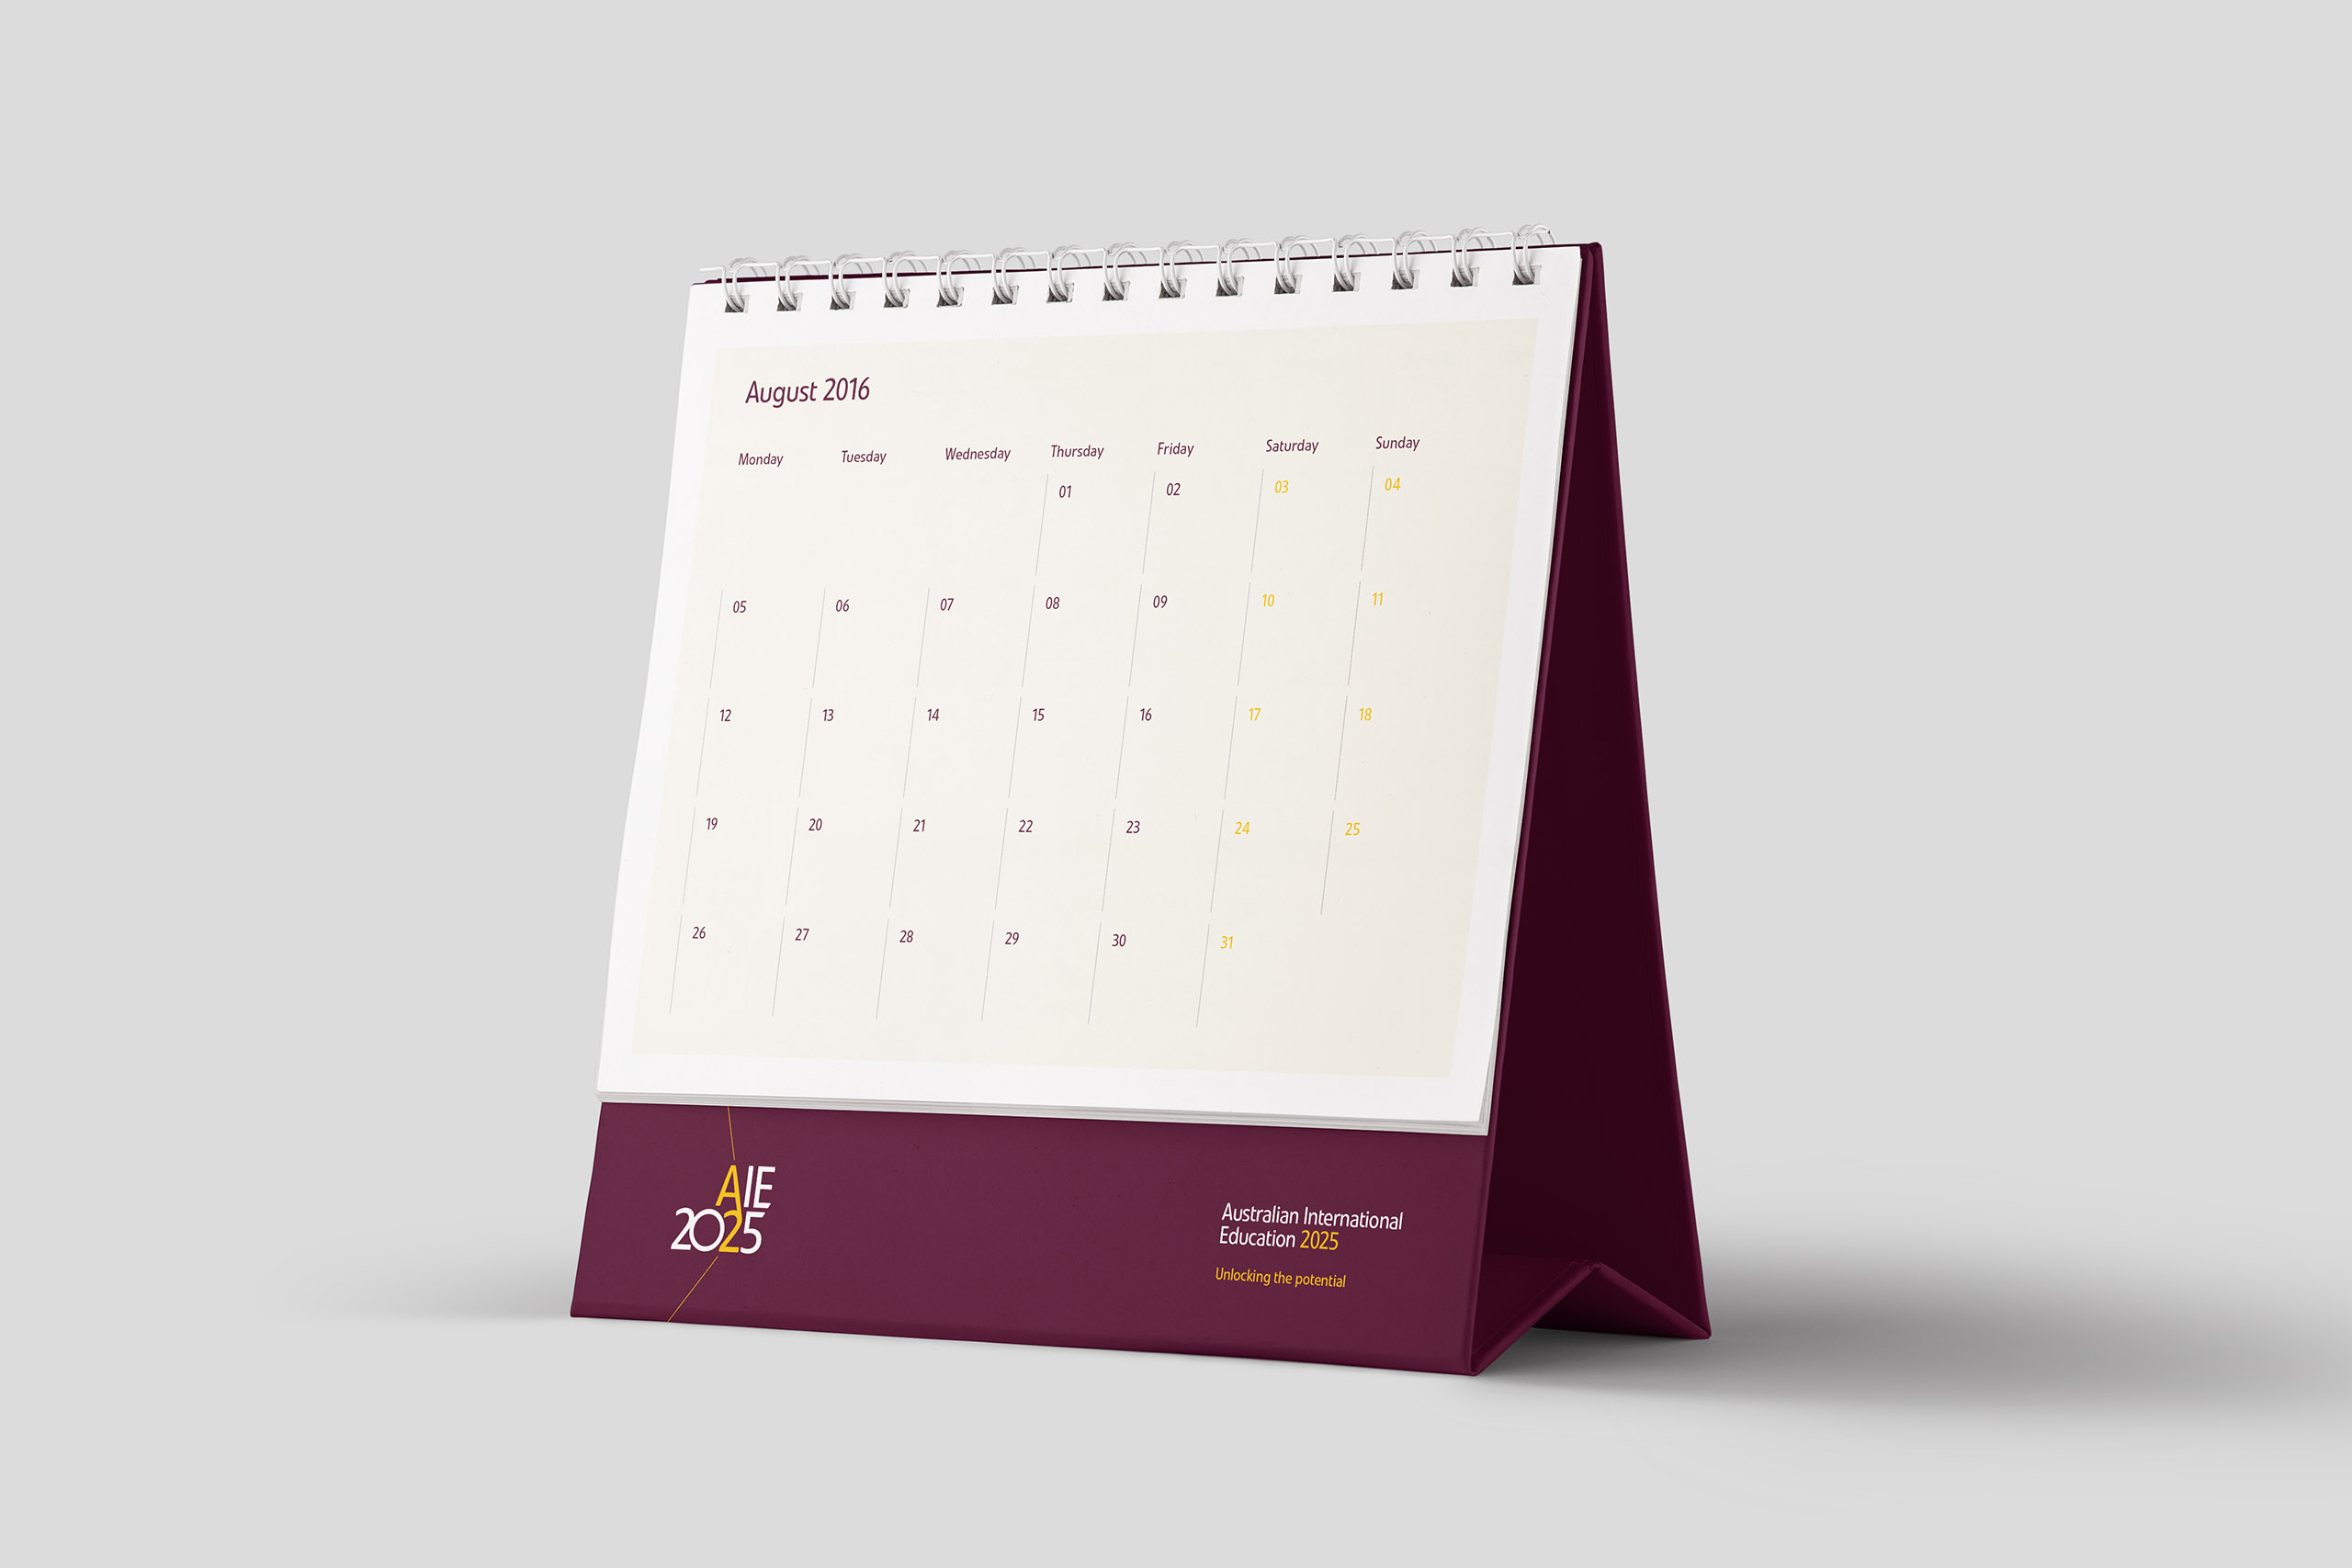 aie2025-desk-calendar-cropped